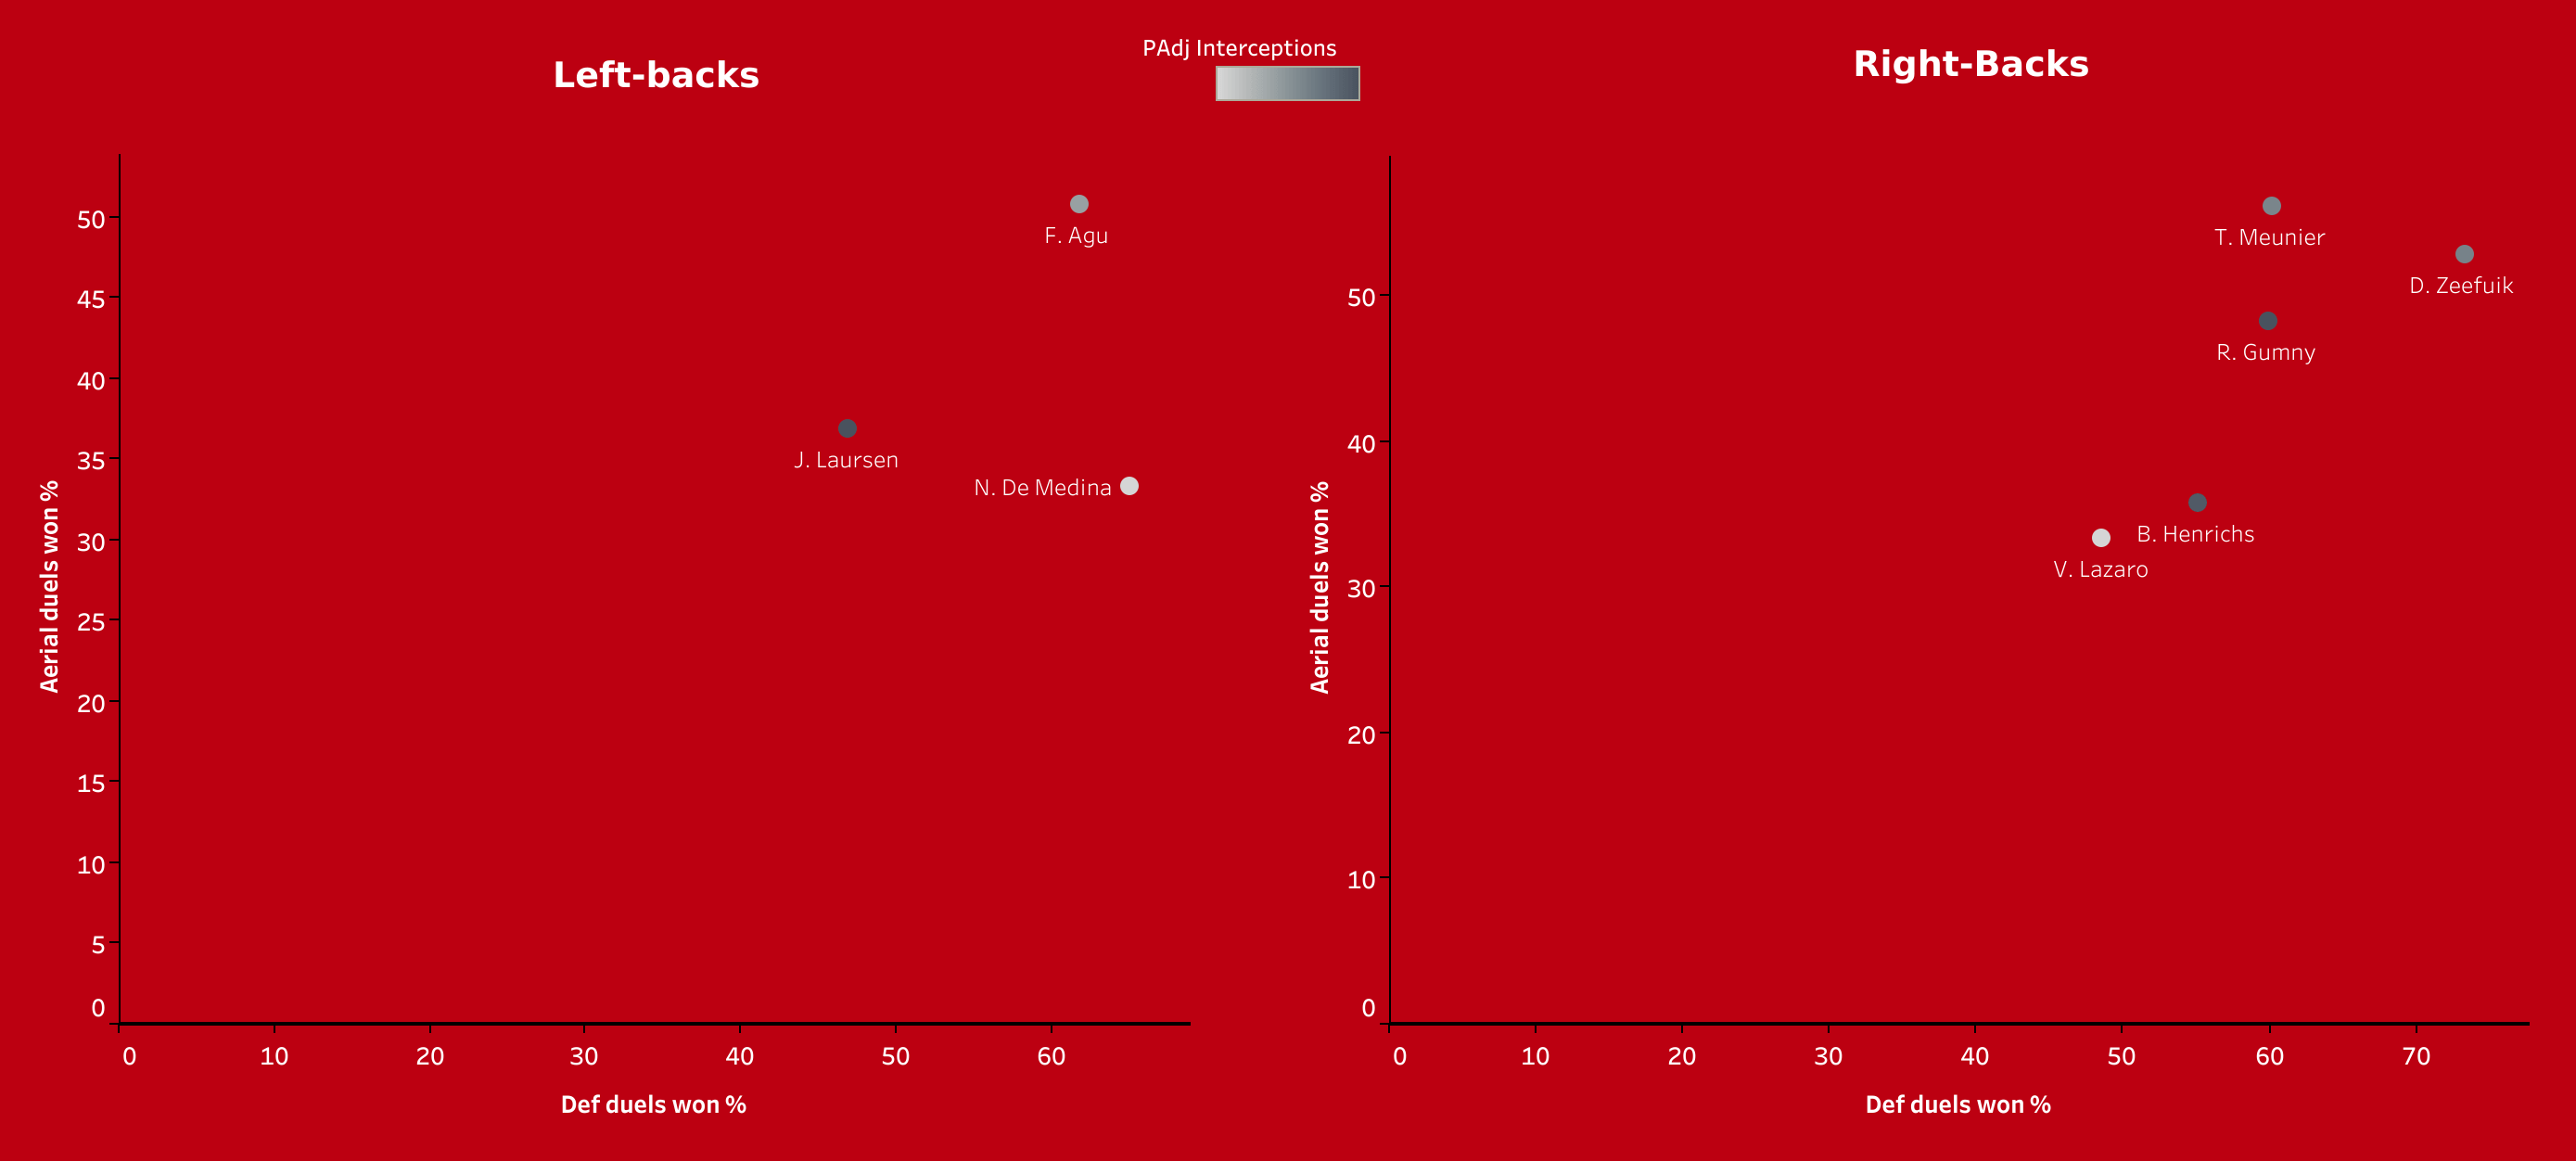 Building a team with the best new signings in the Bundesliga - data analysis statistics